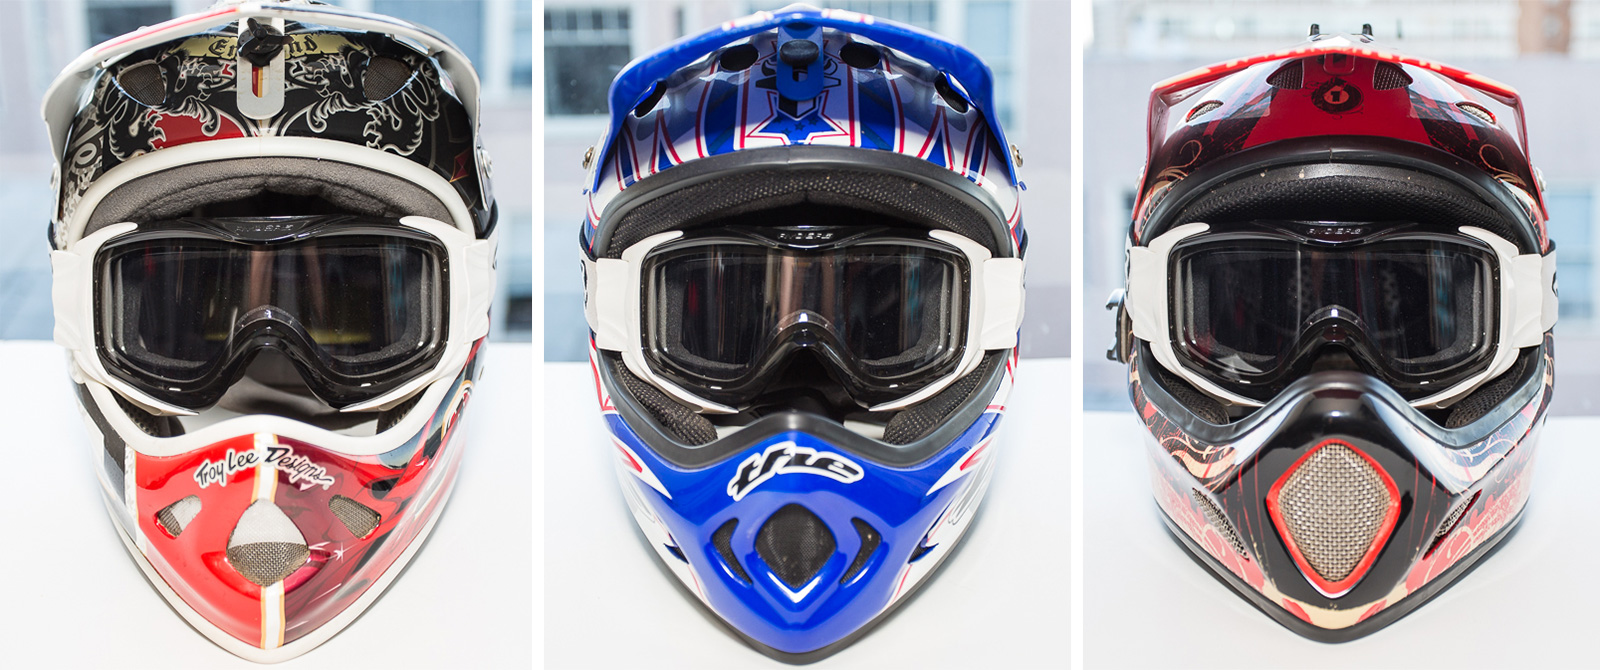 Ryder's Shore goggle mountain on TLD D2, THE, and 661 full face helmets